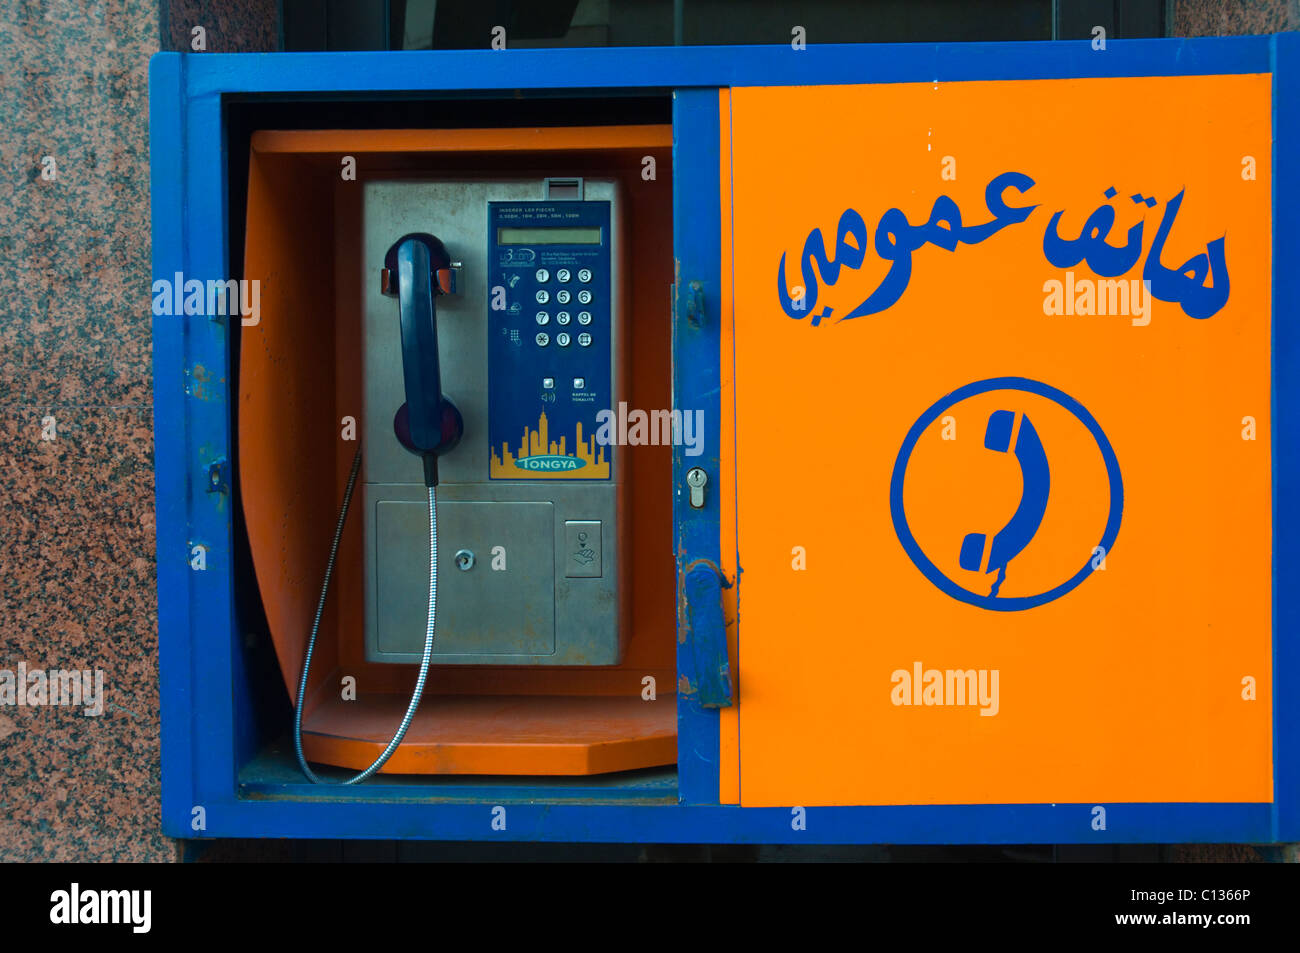 Public payphone Casablanca central Morocco northern Africa - Stock Image